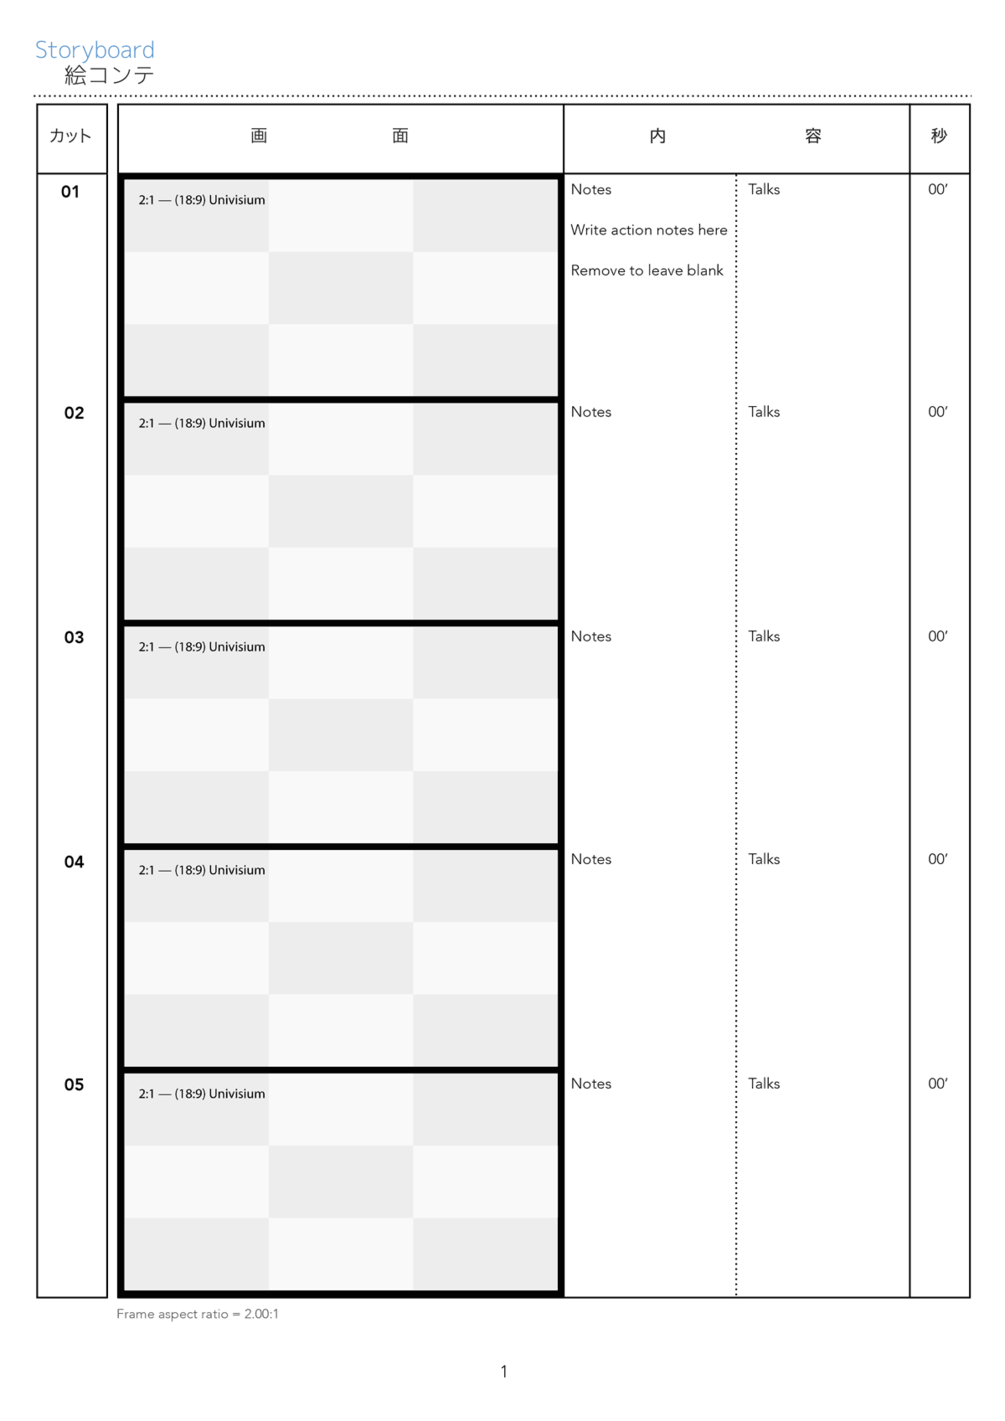 Apple Pages Japanese Anime Storyboard Template for 2.001